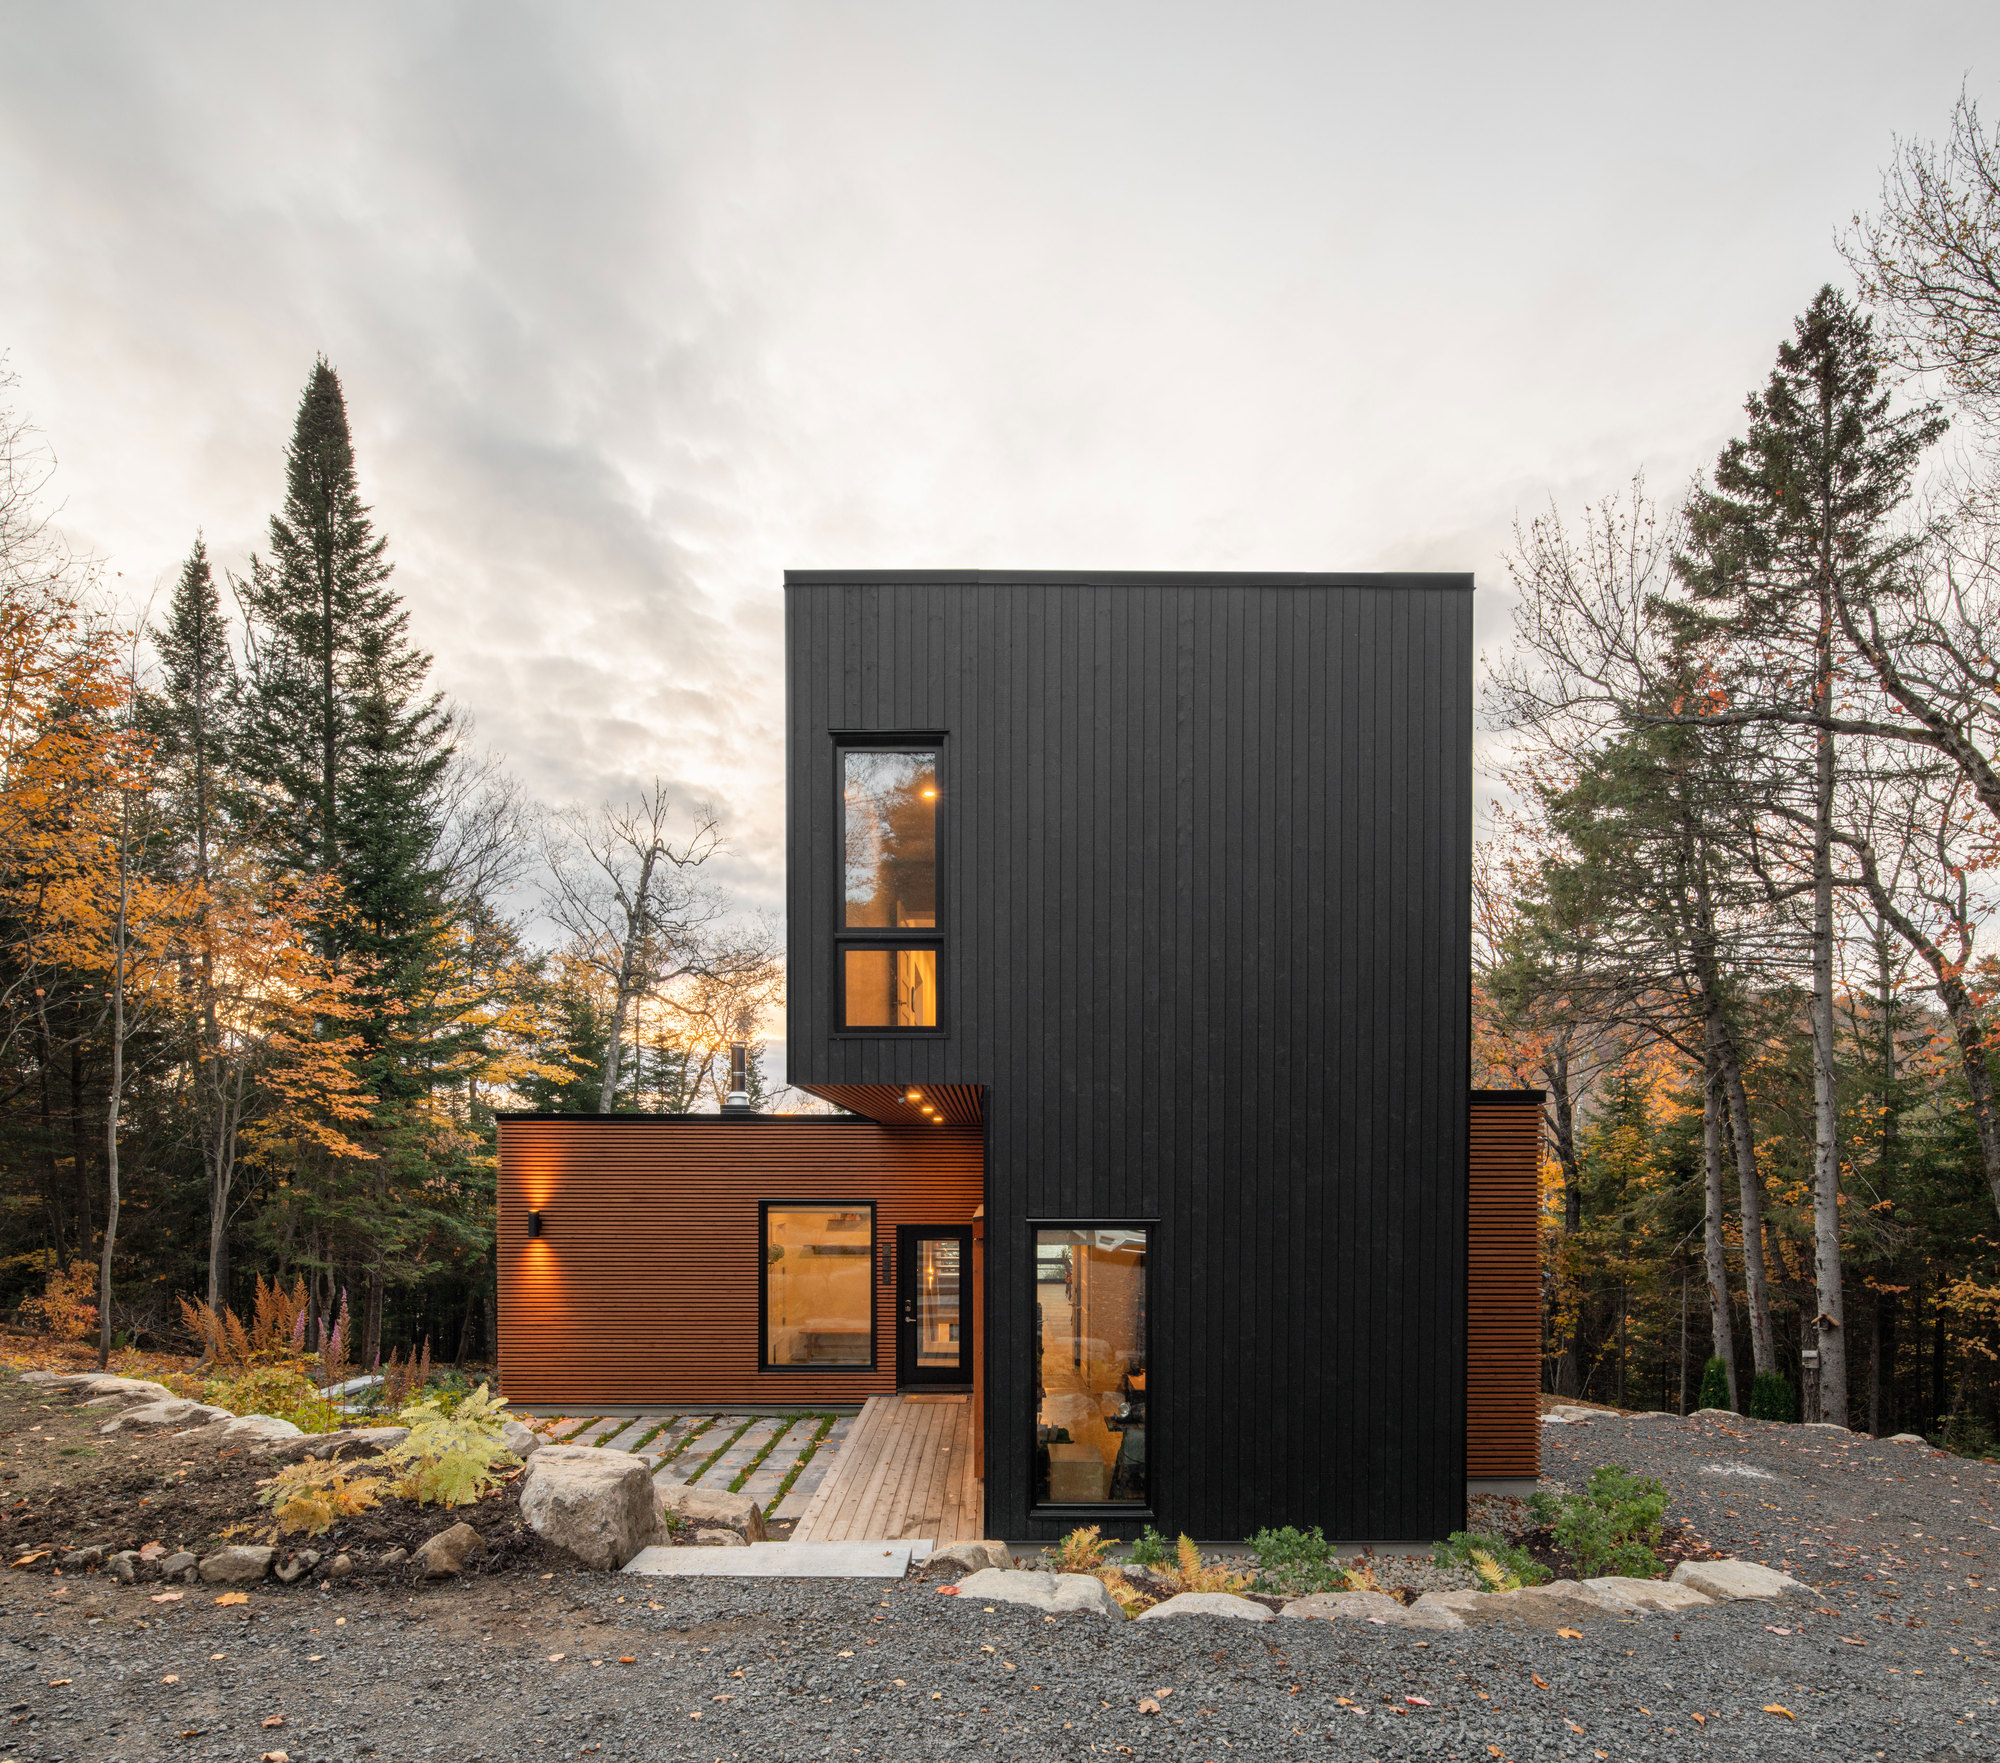 Gallery of Prefabricated Country Home / Figurr Architects Colective - 1